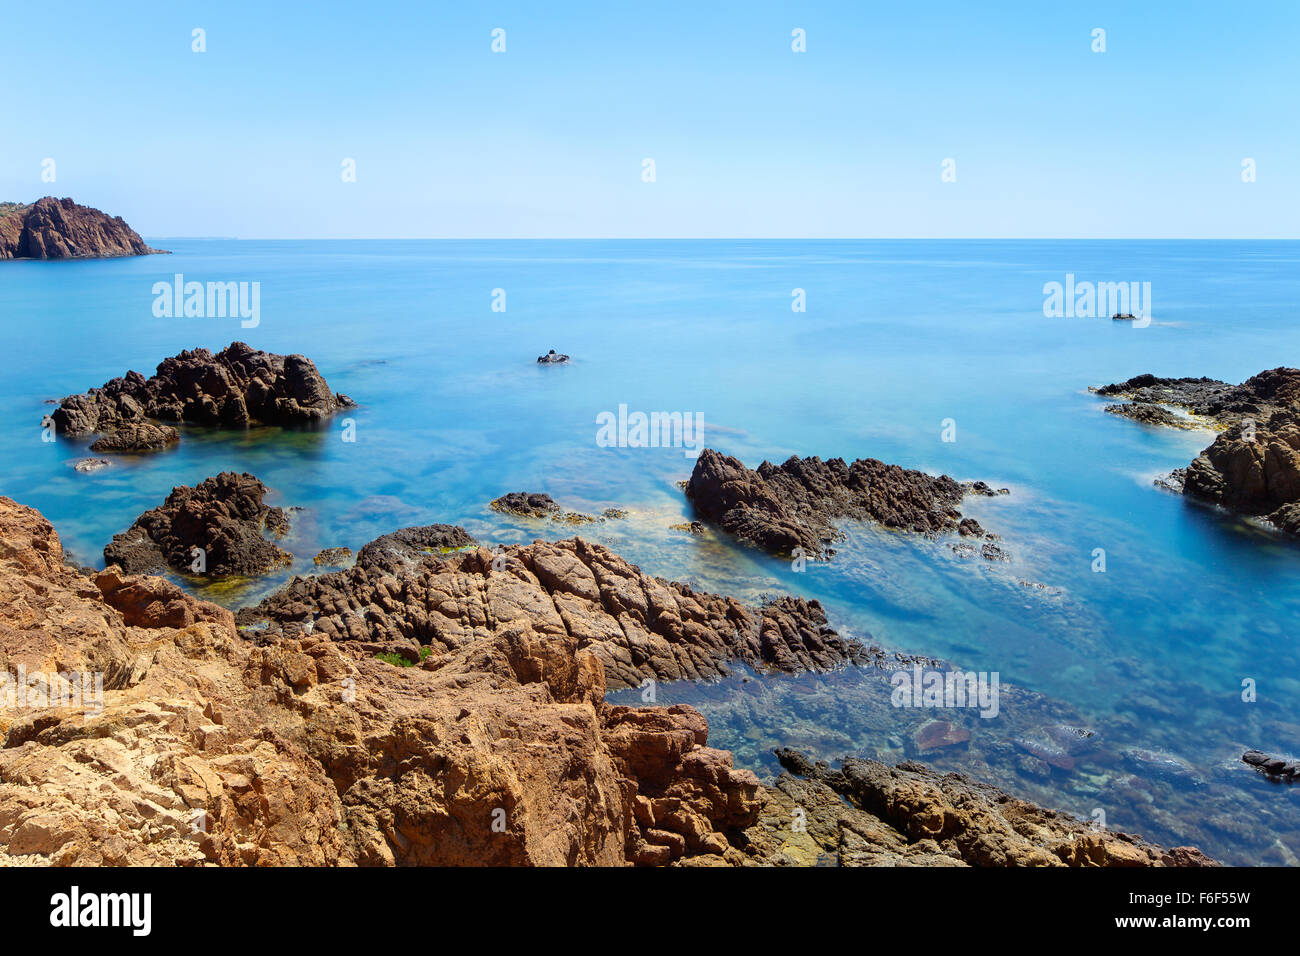 Esterel mediterranean red rocks coast and water sea in a long exposure seascape photography. Cote Azur near Cannes, - Stock Image